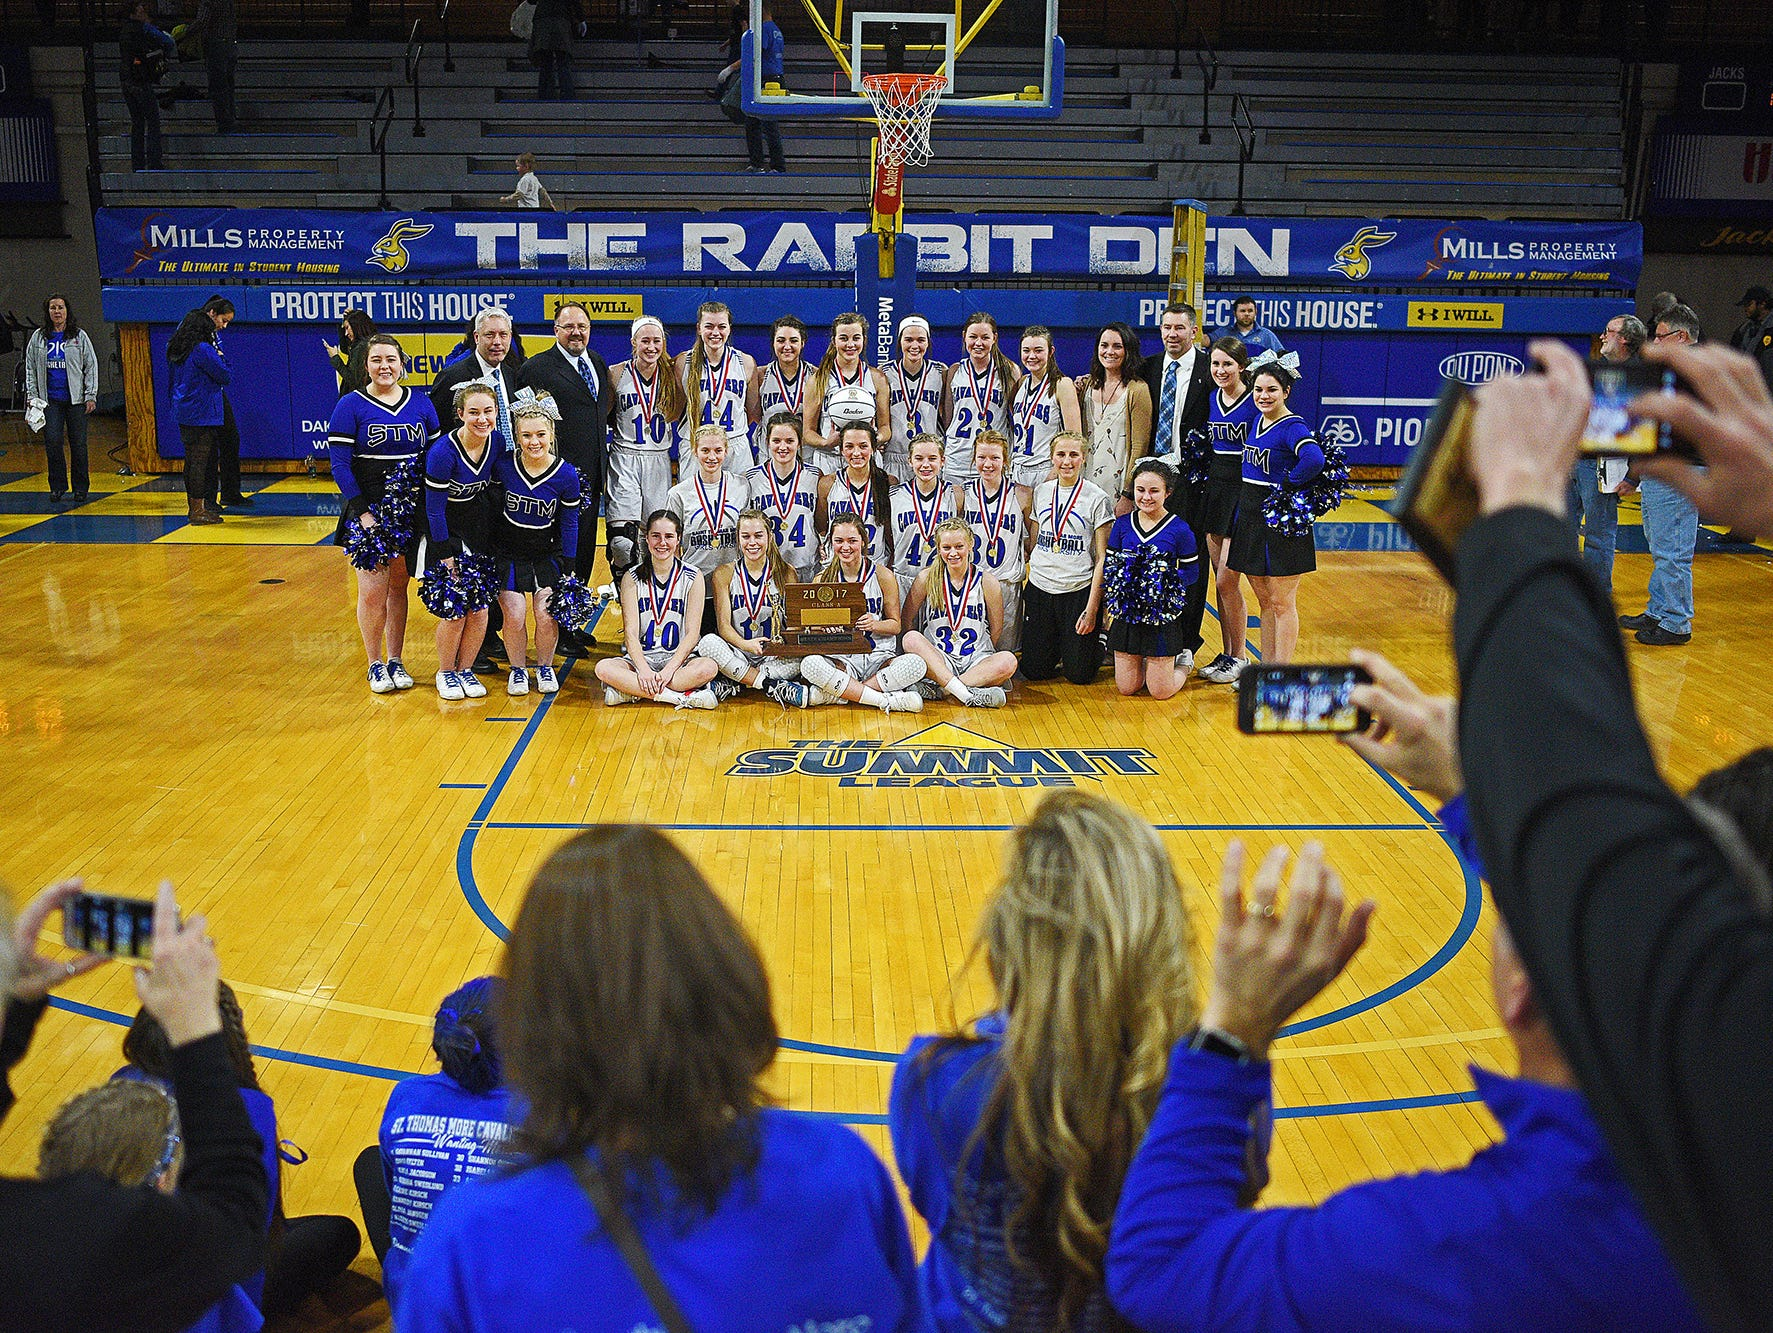 St. Thomas More player pose for photos after their 47-36 win over Lennox in the 2017 SDHSAA Class A State Girls Basketball Tournament championship game for their fourth consecutive title Saturday, March 11, 2017, at Frost Arena on the South Dakota State University campus in Brookings, S.D.